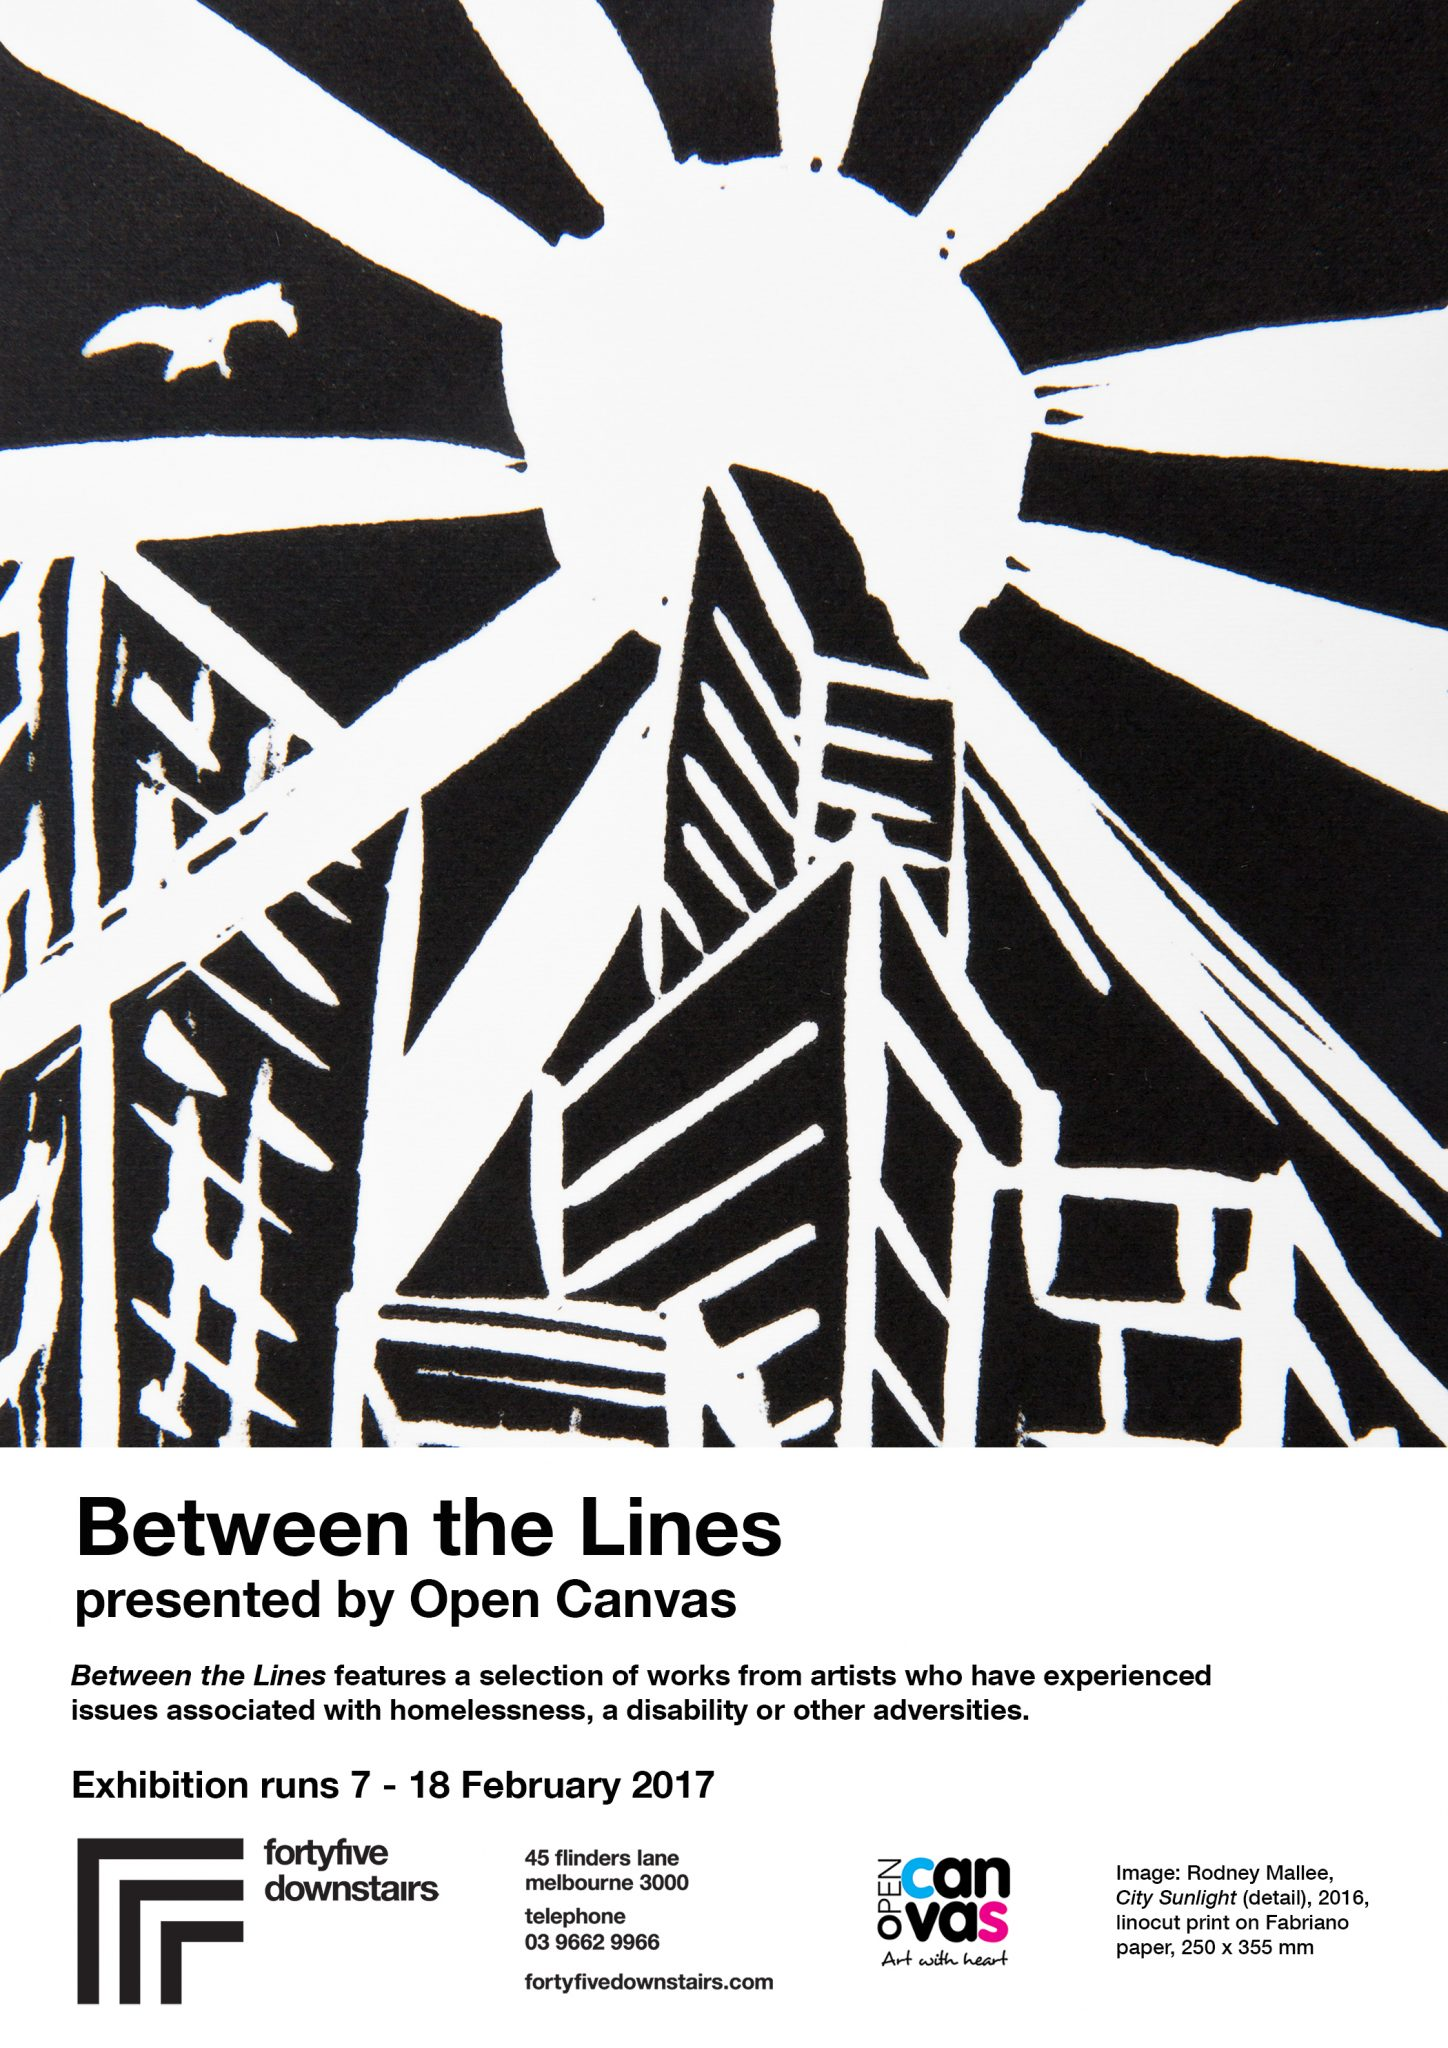 Between the Lines Open Canvas exhibition at fortyfivedownstairs